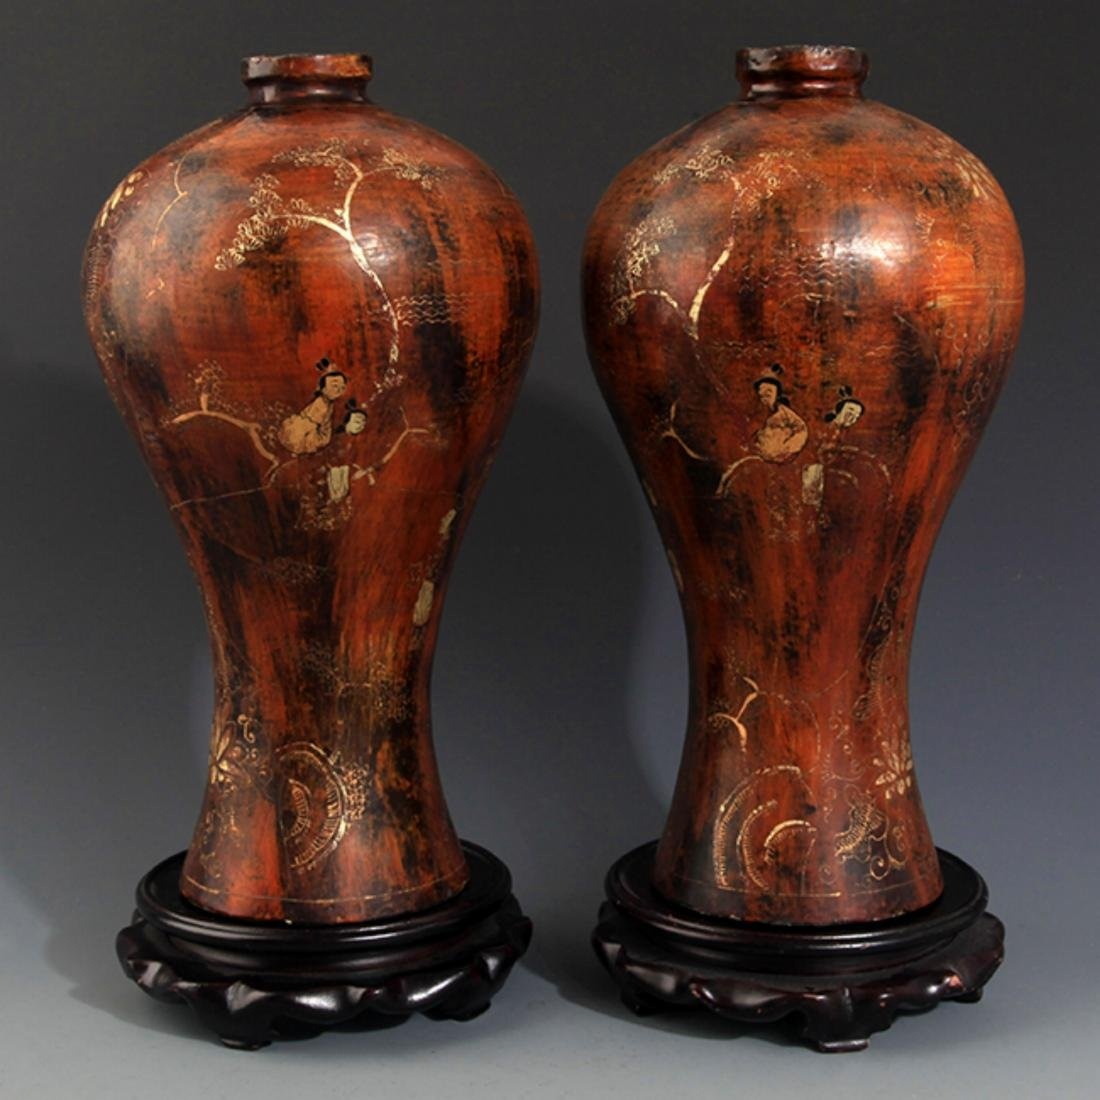 A PAIR OF TALL PAINTED LACQUER BOTTLE